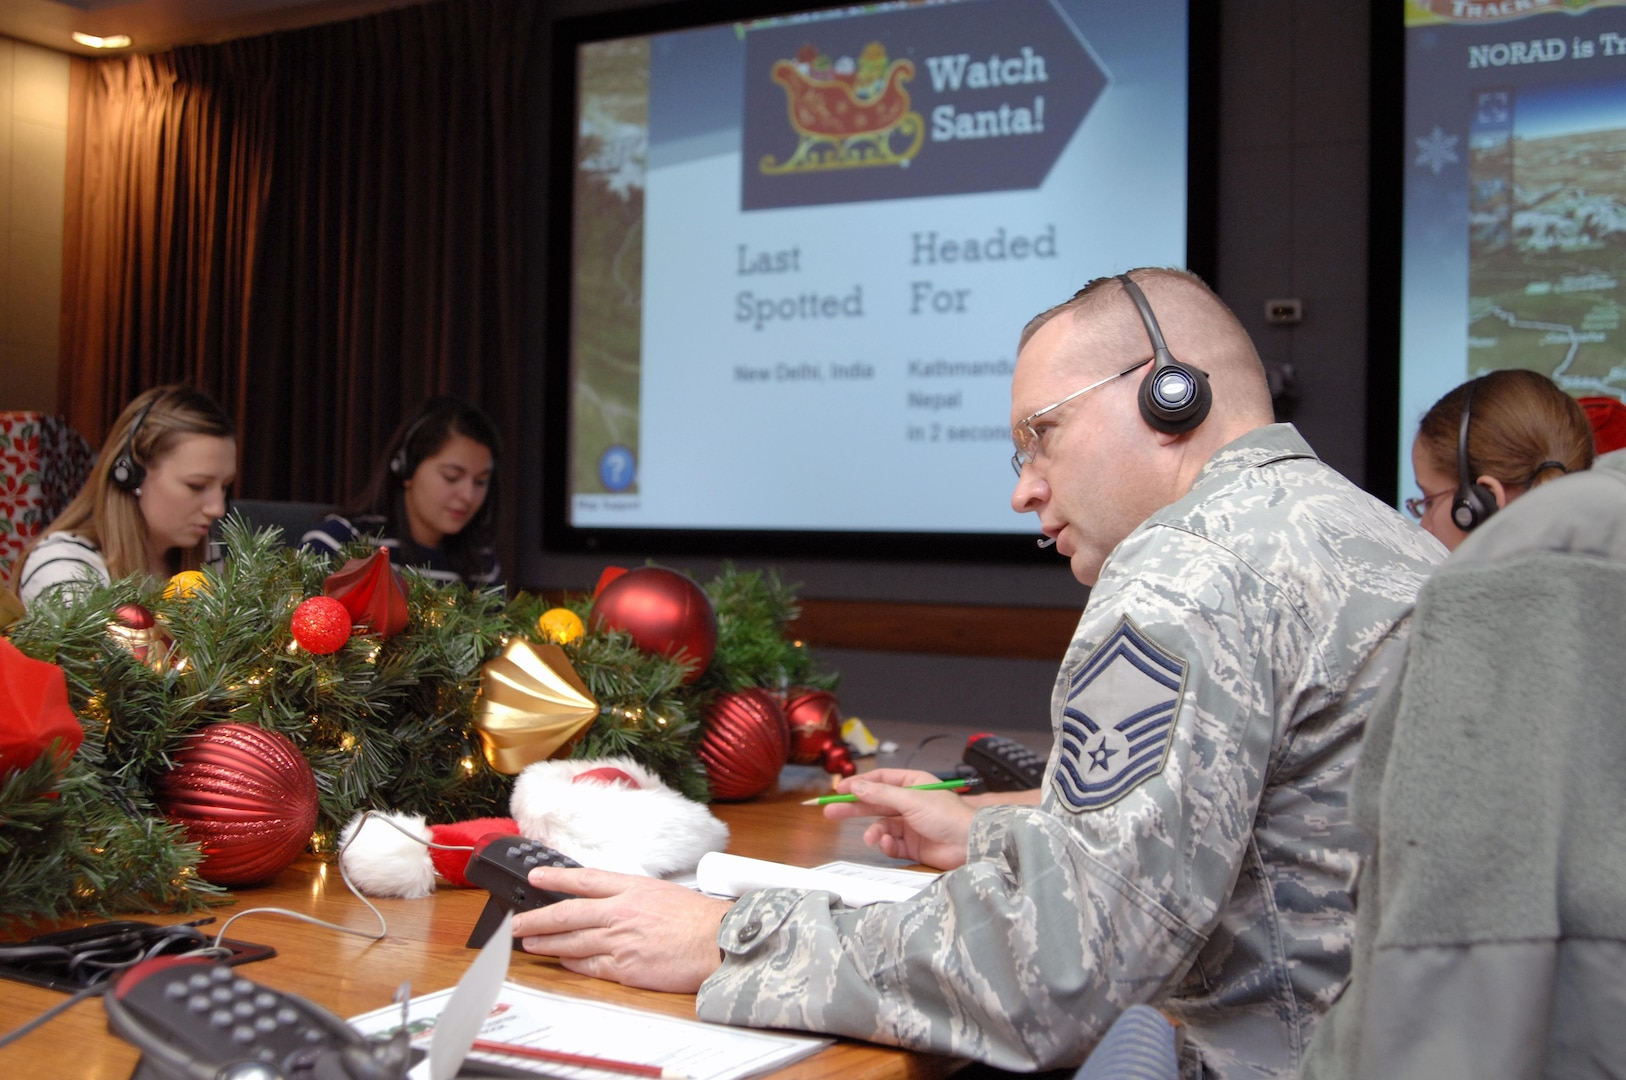 PETERSON AIR FORCE BASE, Colo. - Senior Master Sgt. Christopher Kozel, NORAD and USNORTHCOM J34, takes calls at the NORAD Tracks Santa Operations Center Dec. 24, 2012. Volunteers from every U.S. and Canadian military branch came out to volunteer during the 24 hours NORAD tracked Santa. (U.S. Air Force photo by Tech. Sgt. Thomas J. Doscher)